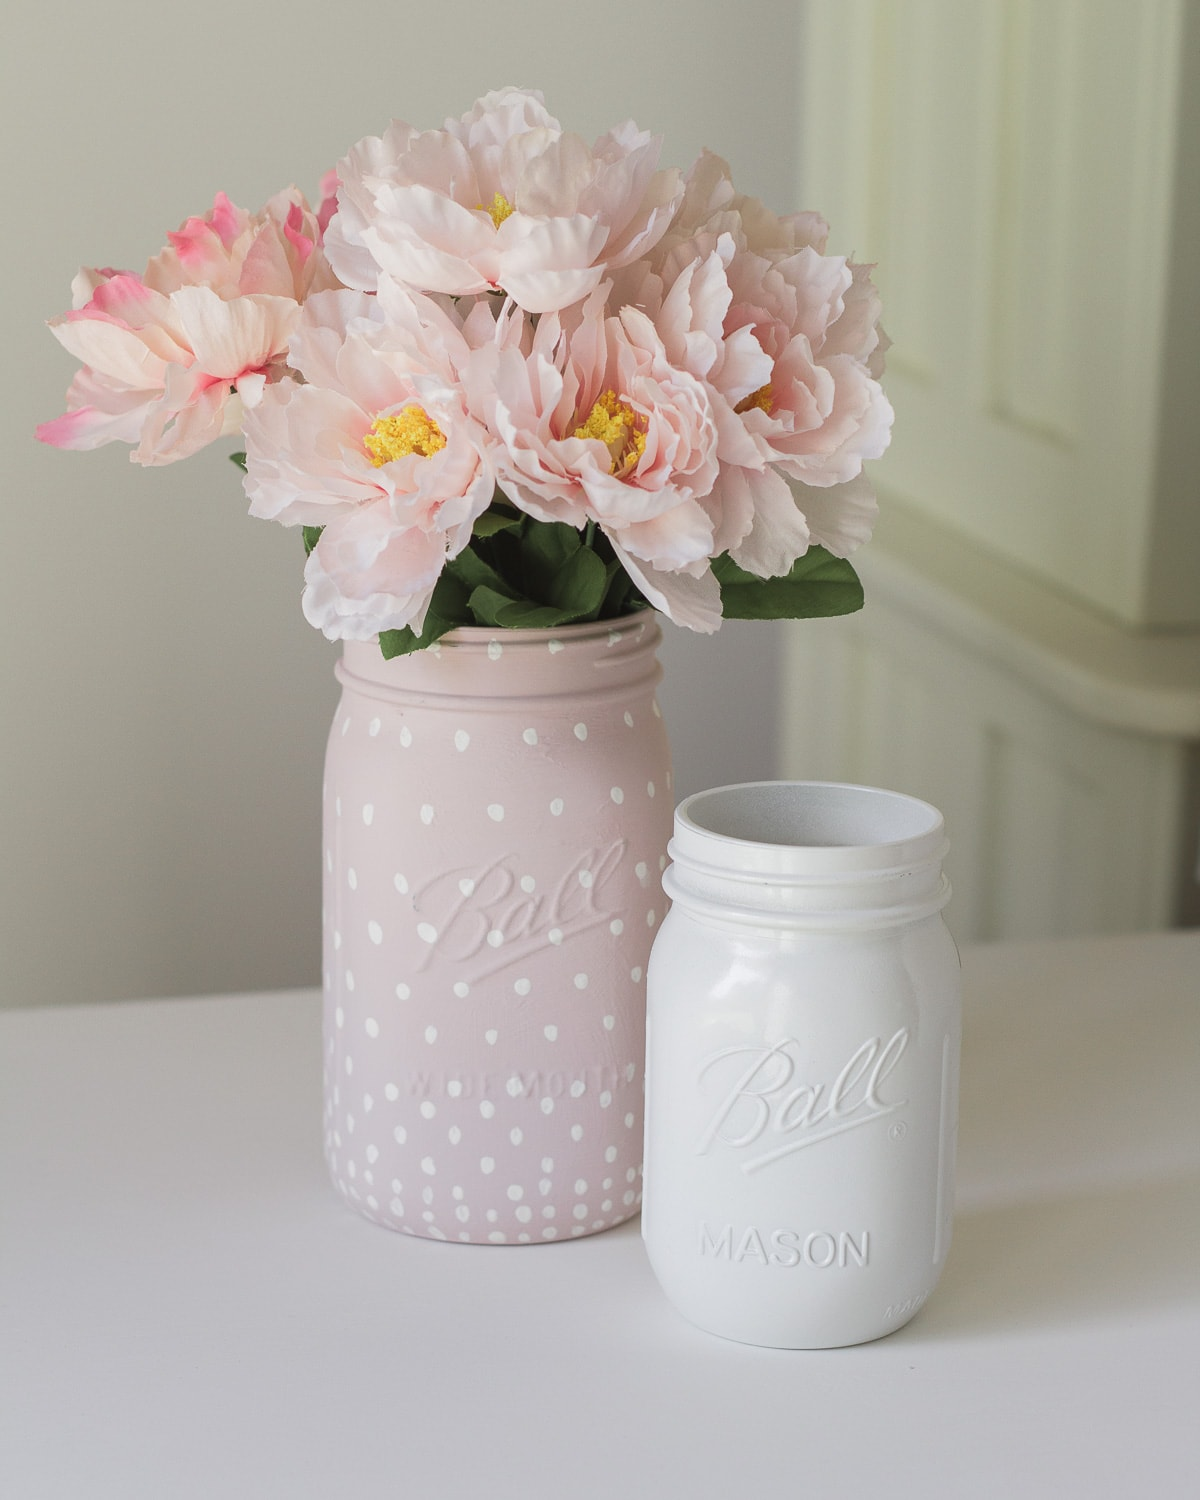 Painted mason jars with flowers inside.